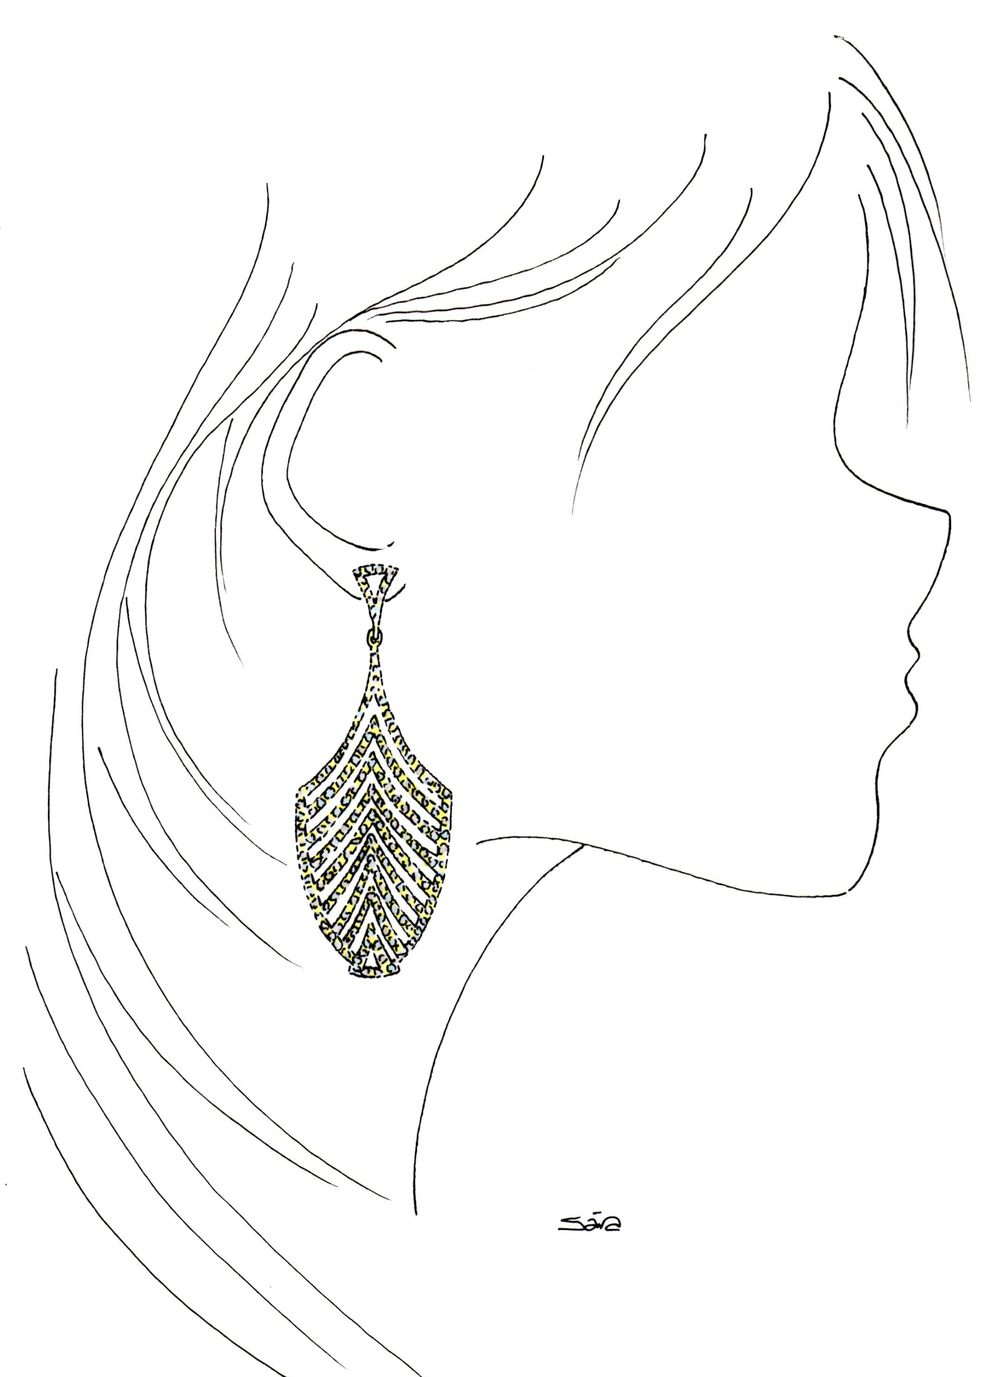 Illustration inspired by Ileana's Deco Escape Earrings